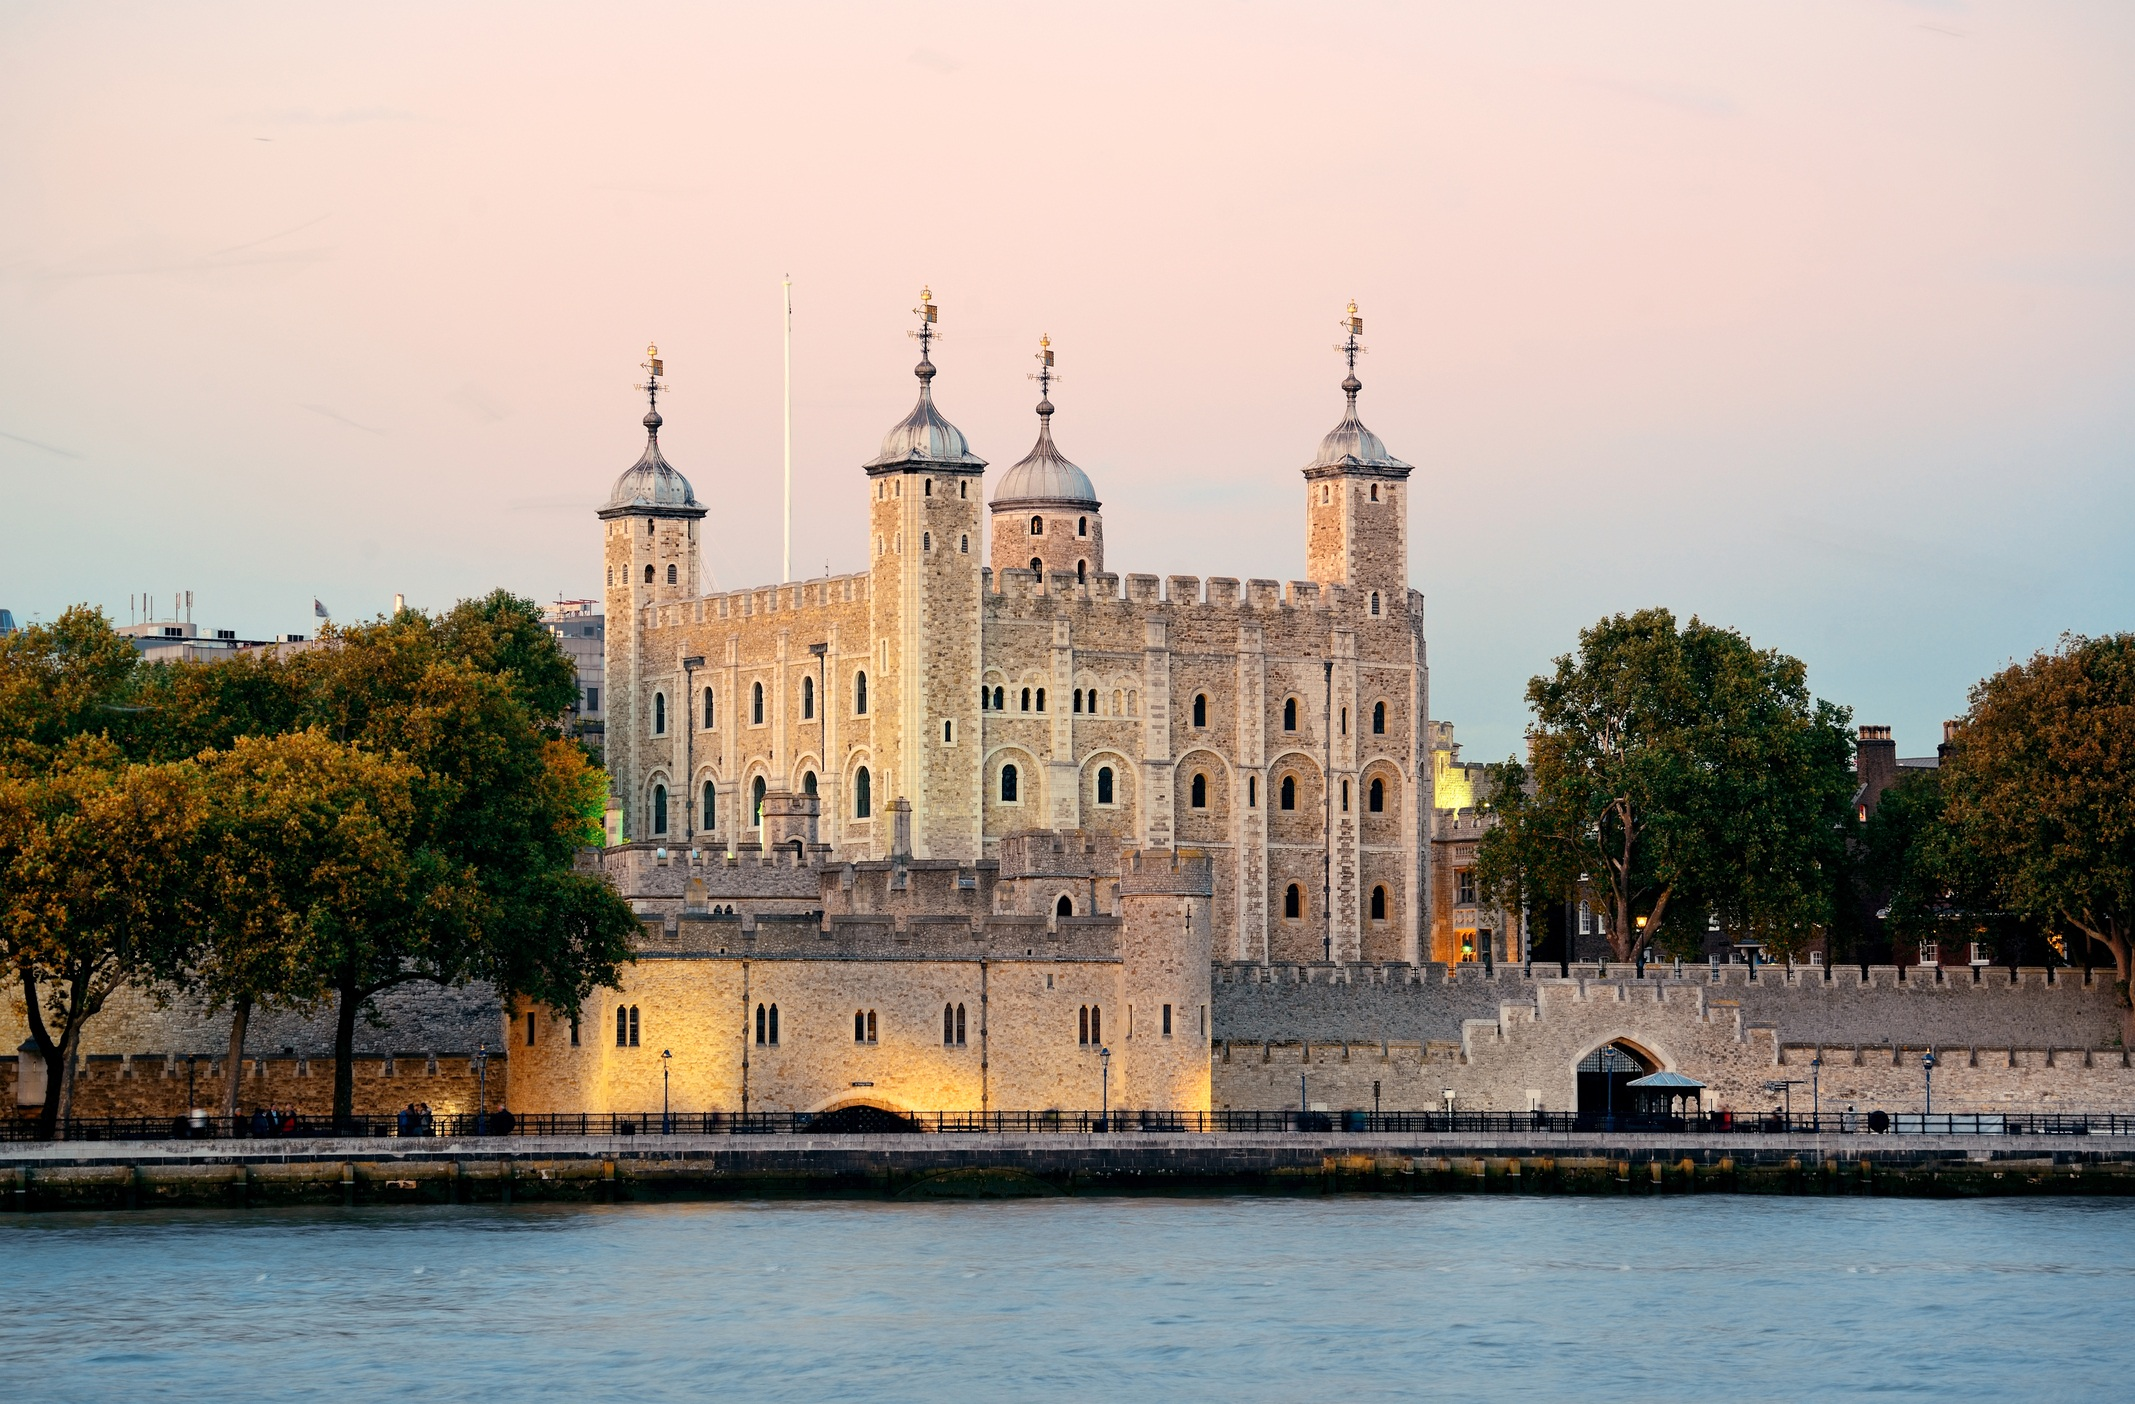 Tower of London during sunset